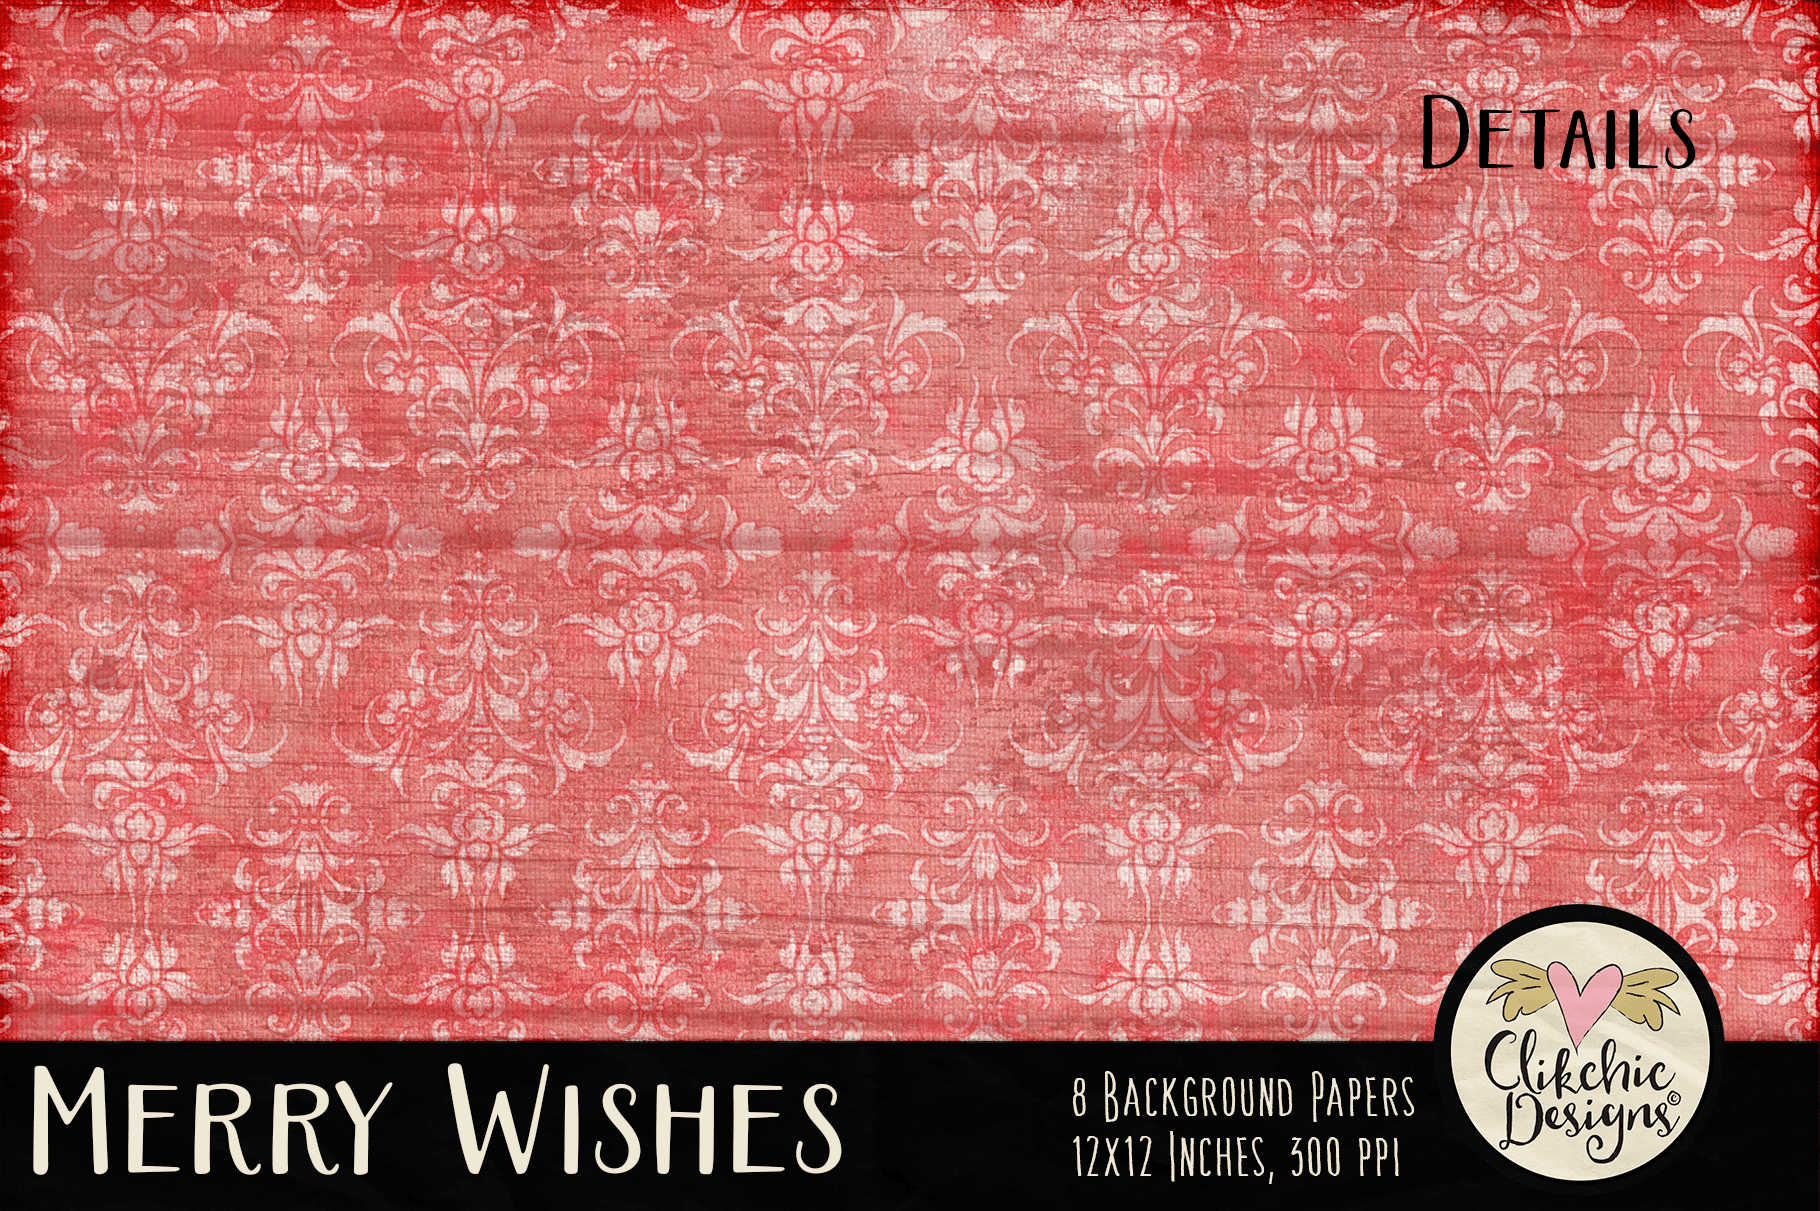 Christmas Backgrounds - Merry Wishes Digital Papers Textures example image 4